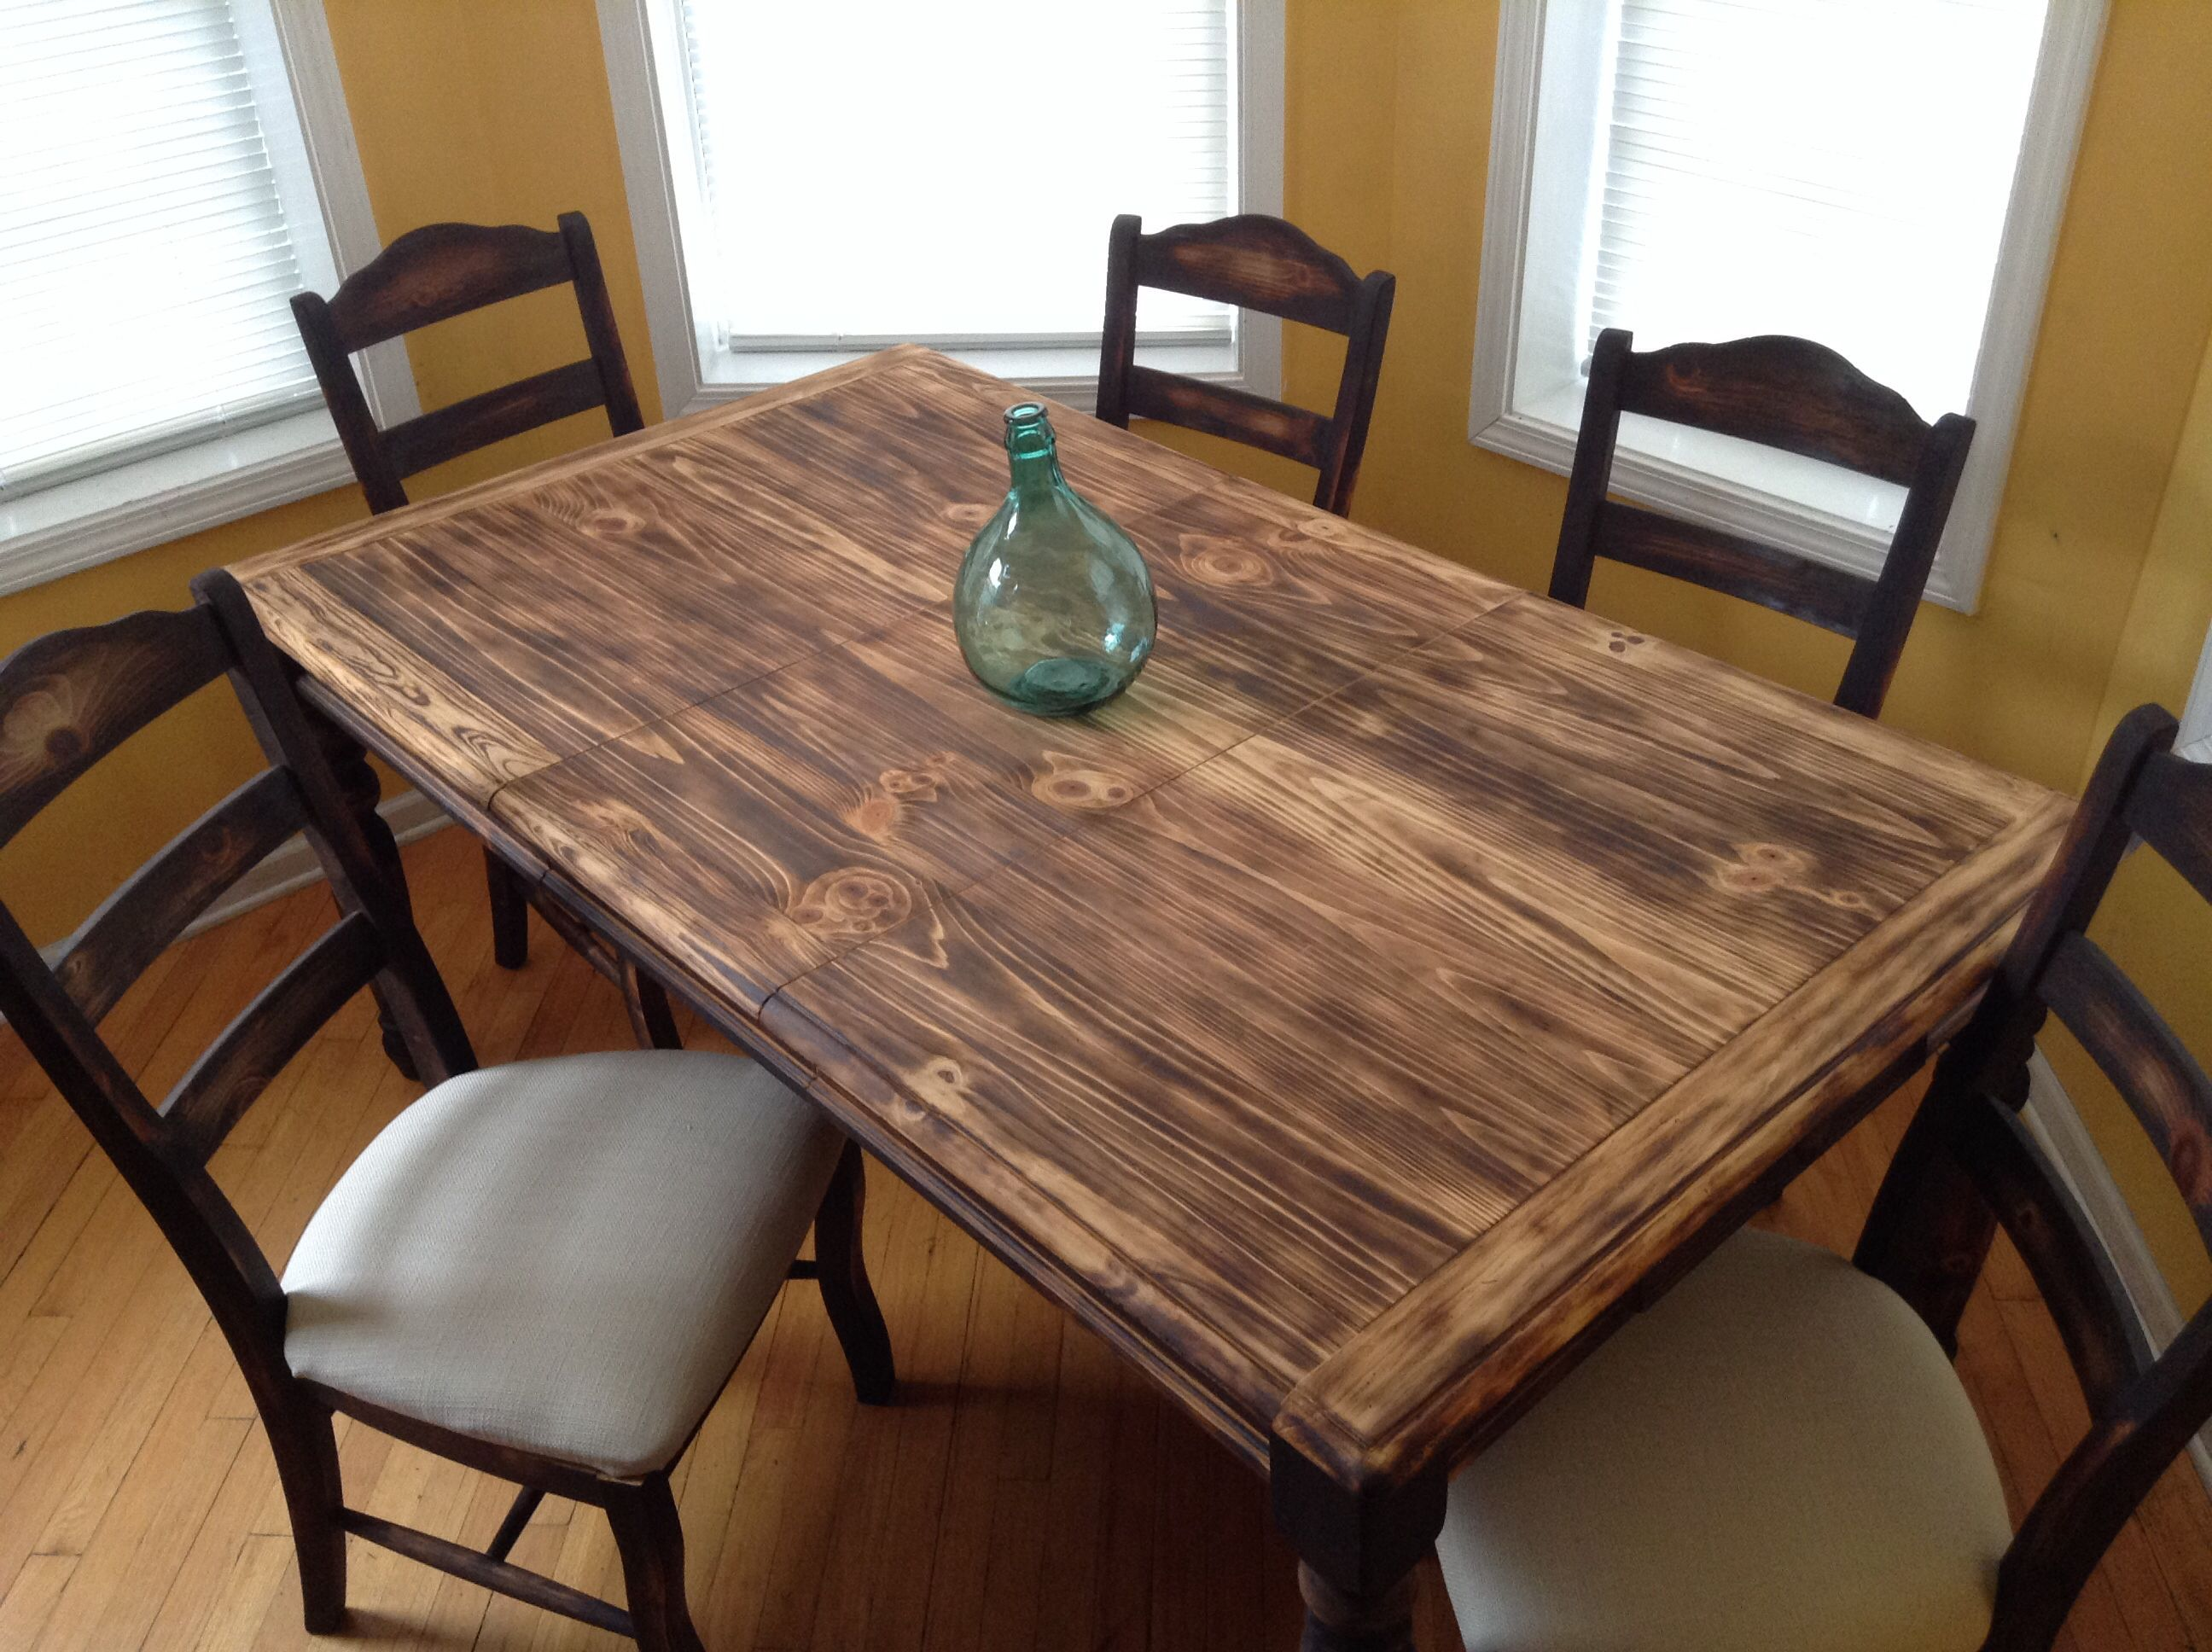 Torched Pine Dining Table by Chicago Fire